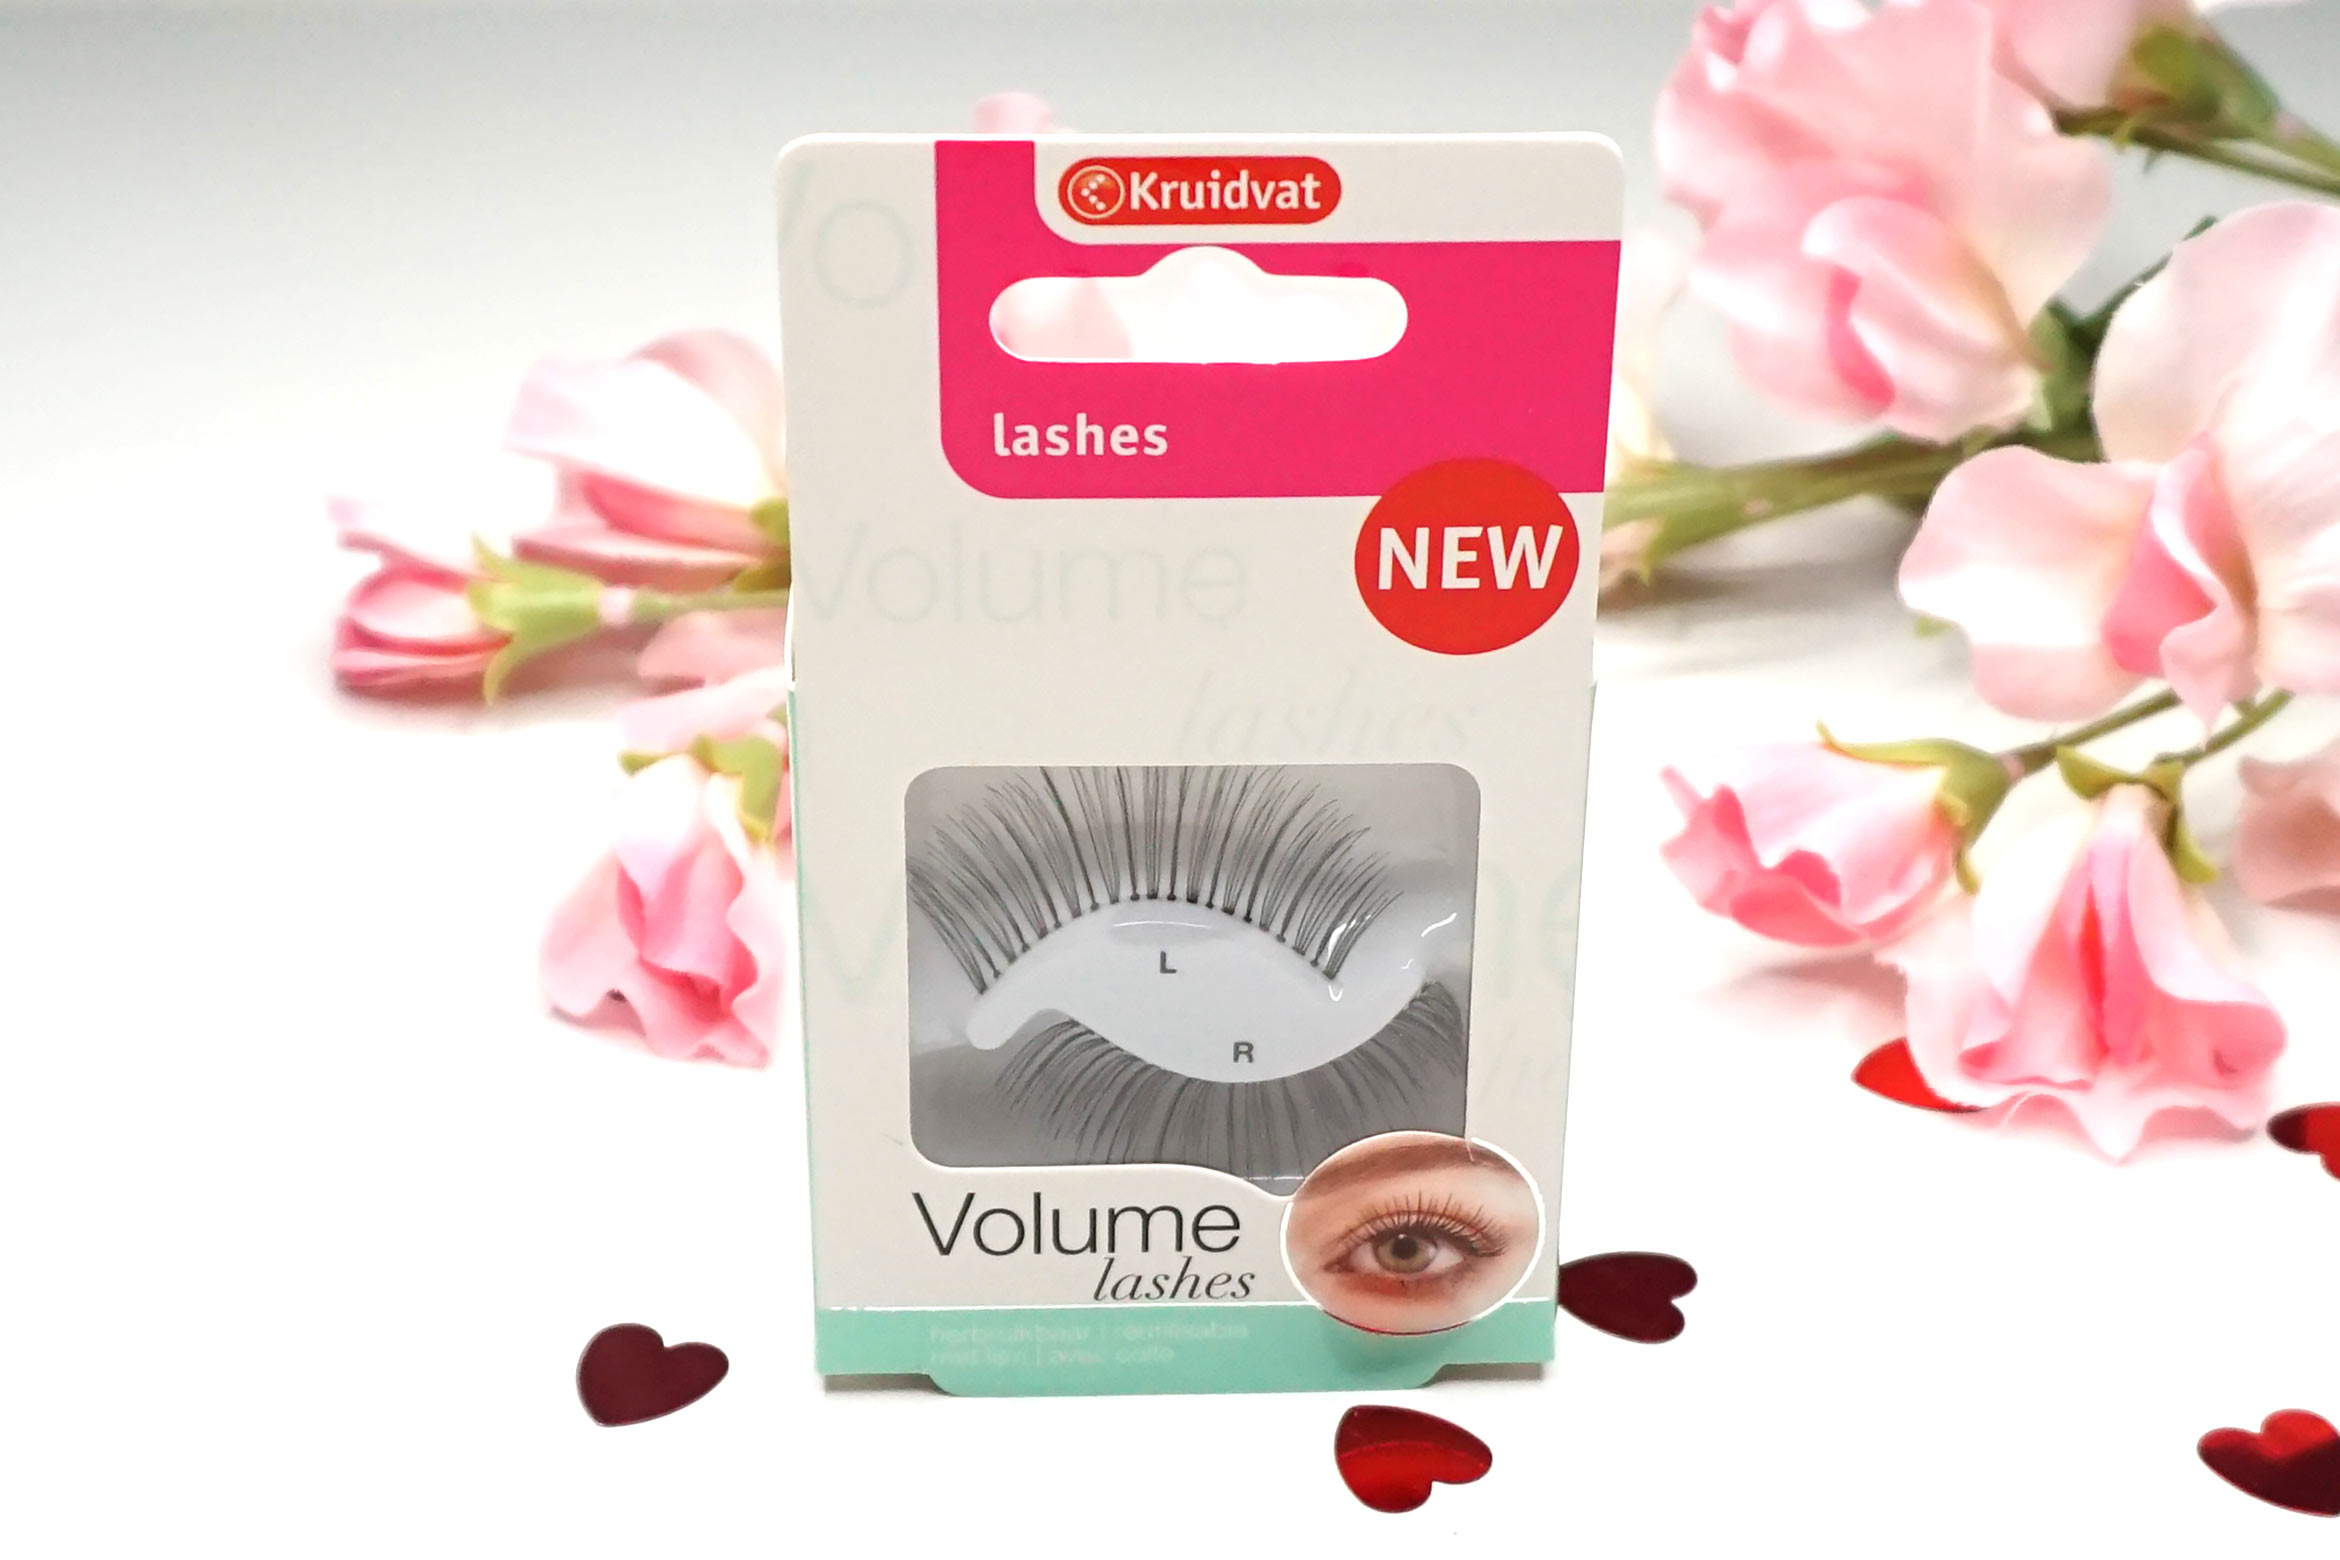 kruidvat-volume-lashes-review